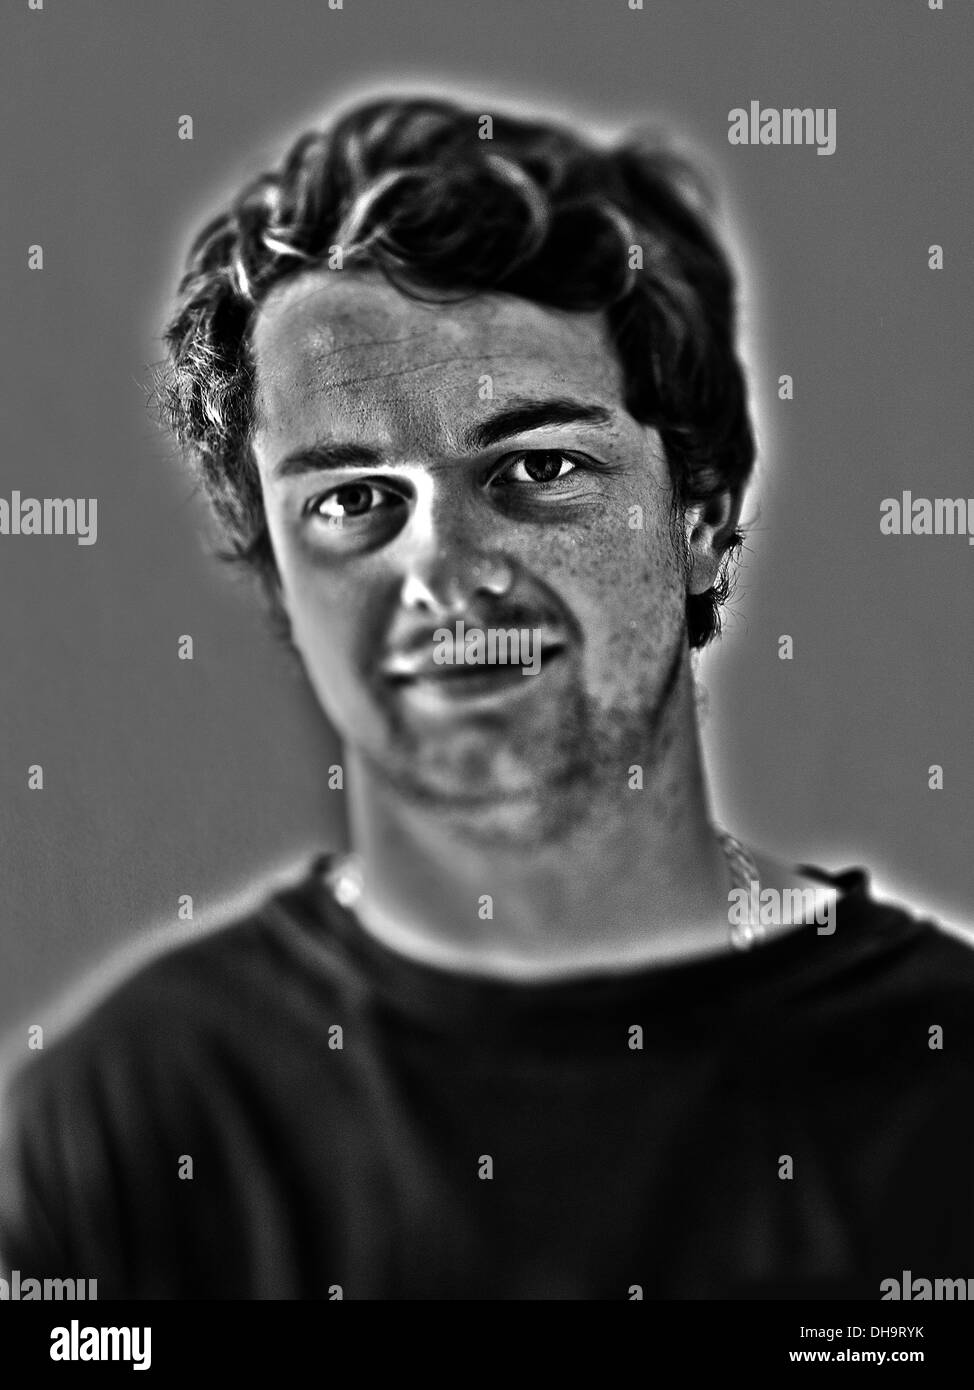 White European male age 25-30 photographed in black and white in a studio environment - Stock Image